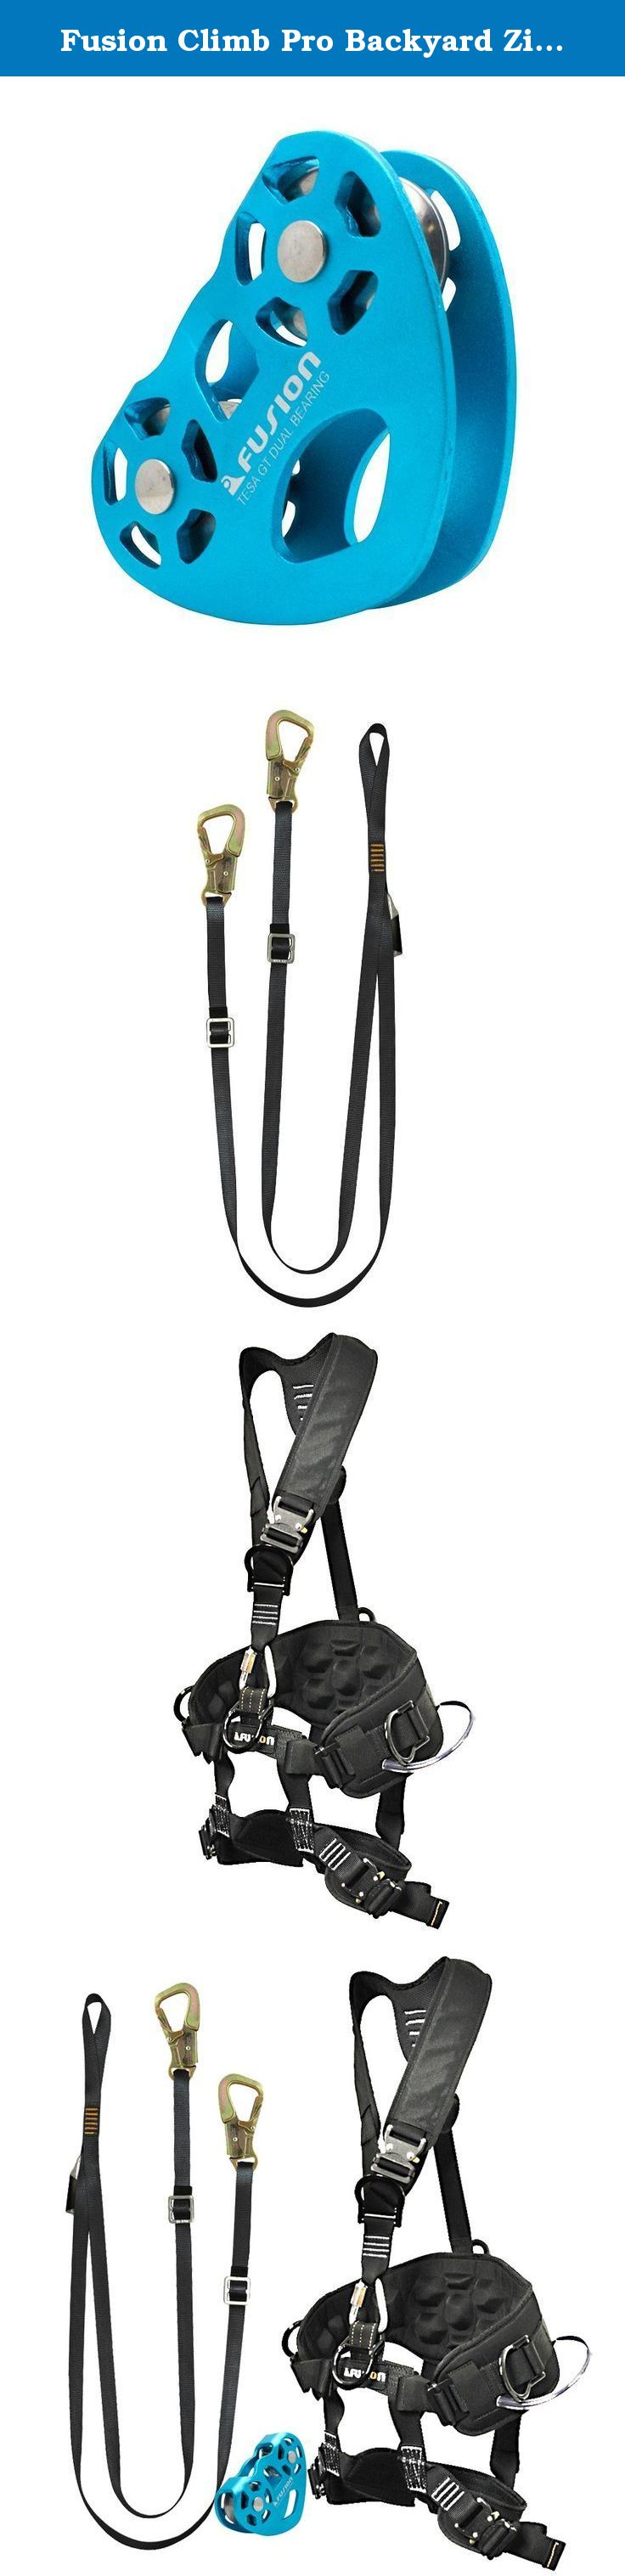 fusion climb pro backyard zip line kit fk a hlt 11 harness lanyard